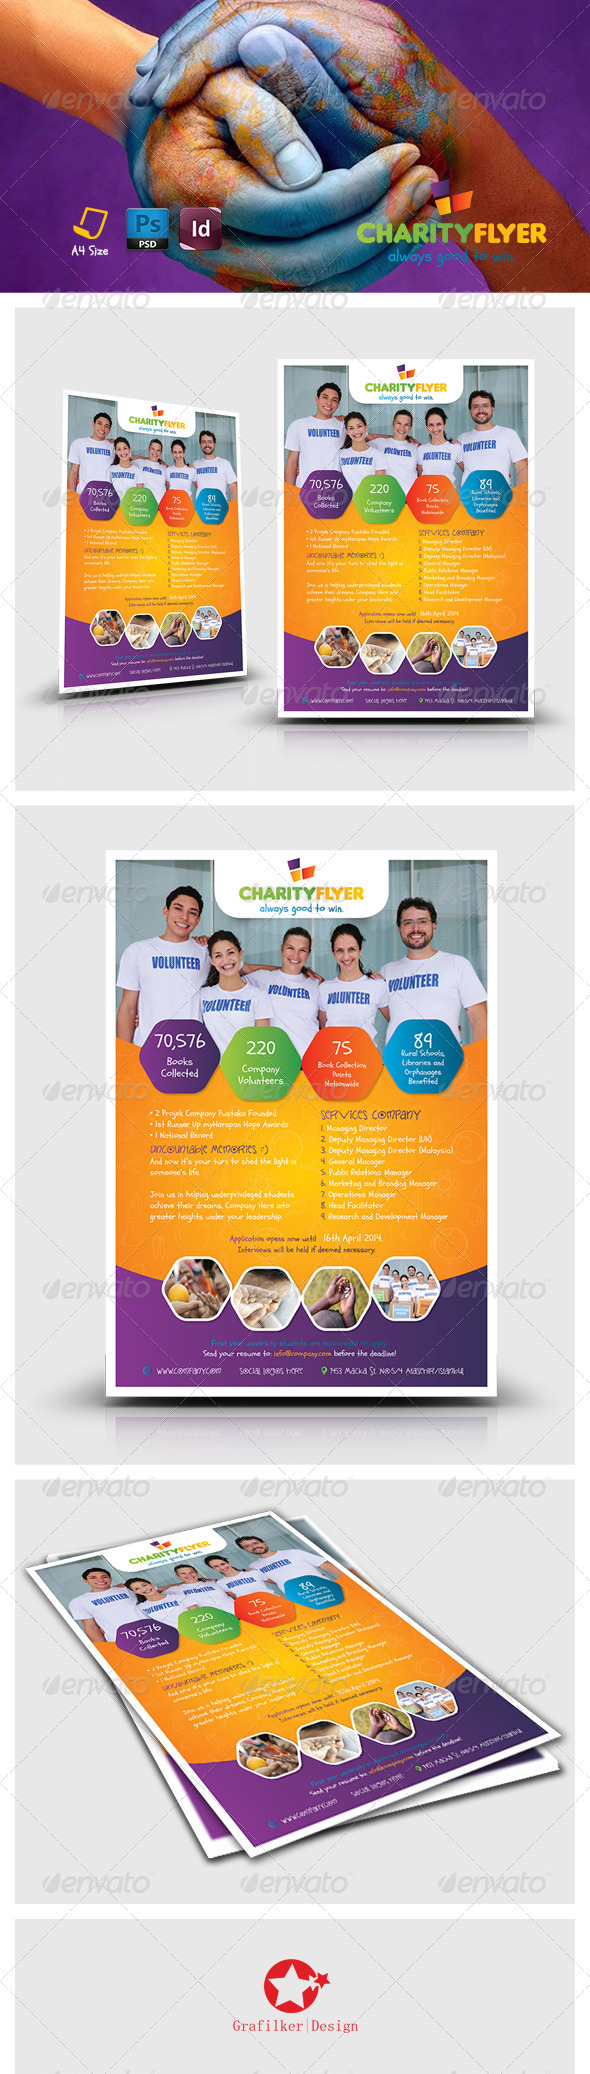 GraphicRiver Charity Flyer Templates 7381780